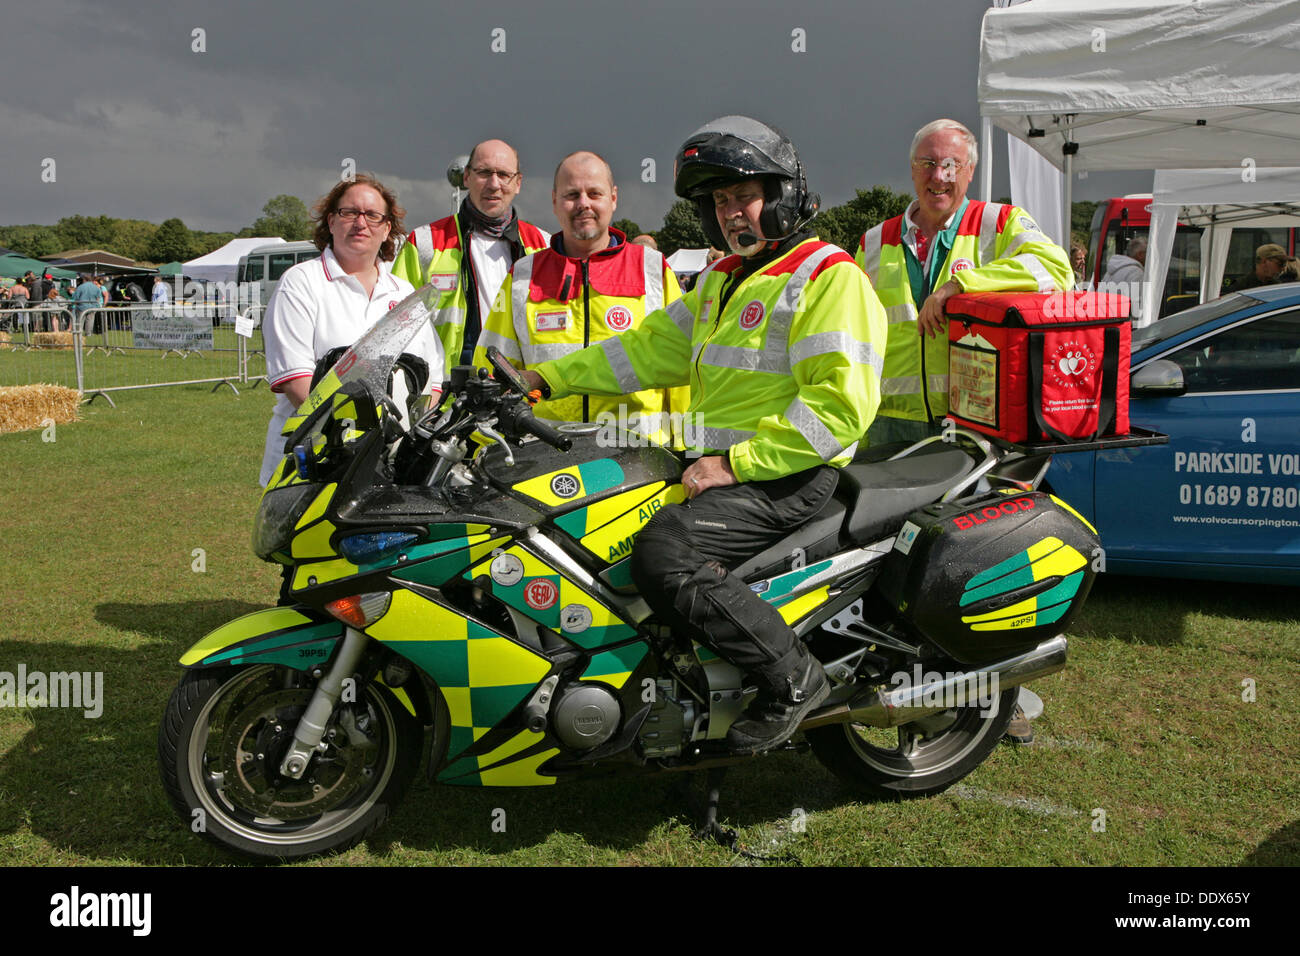 Orpington, UK. 8th Sep, 2013. The Blood transfusion service staff with their motorcycle attend Harris Hospiscare Classic Car show Credit: Keith Larby/Alamy Live News - Stock Image